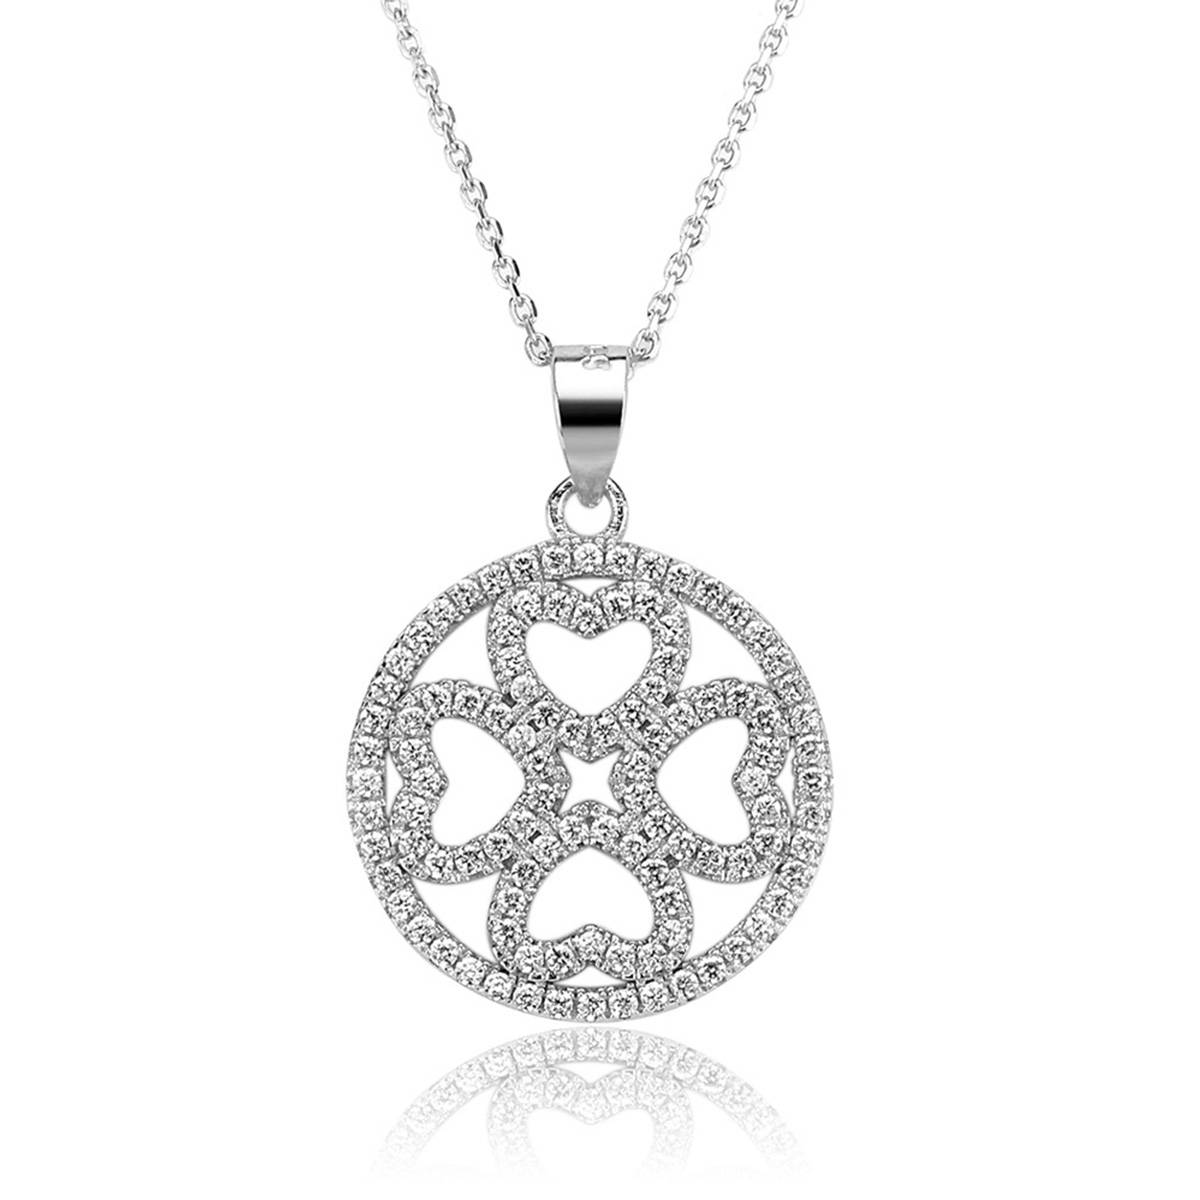 2017 Micro Setting Jewelry Necklace Four Leaf Clover Necklace with AAA Cubic Zircon 925 Silver Neckl